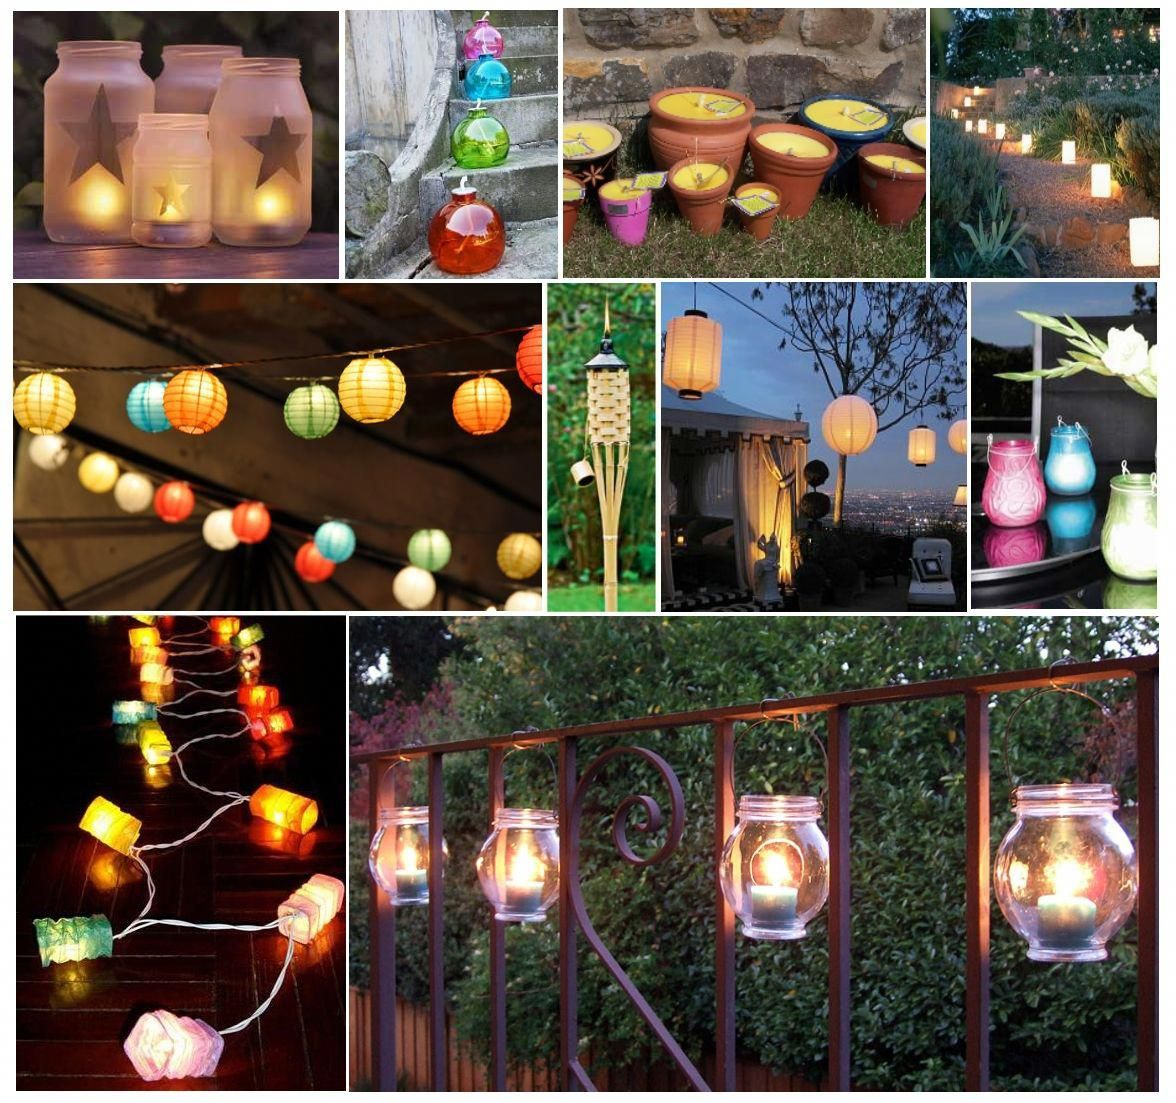 Wow Awesome Outdoor Lighting Ideas That Bring Magic Into The Backyard 4893987612 Yardslightingideas Bbq Decorations Backyard Party Outdoor Graduation Parties